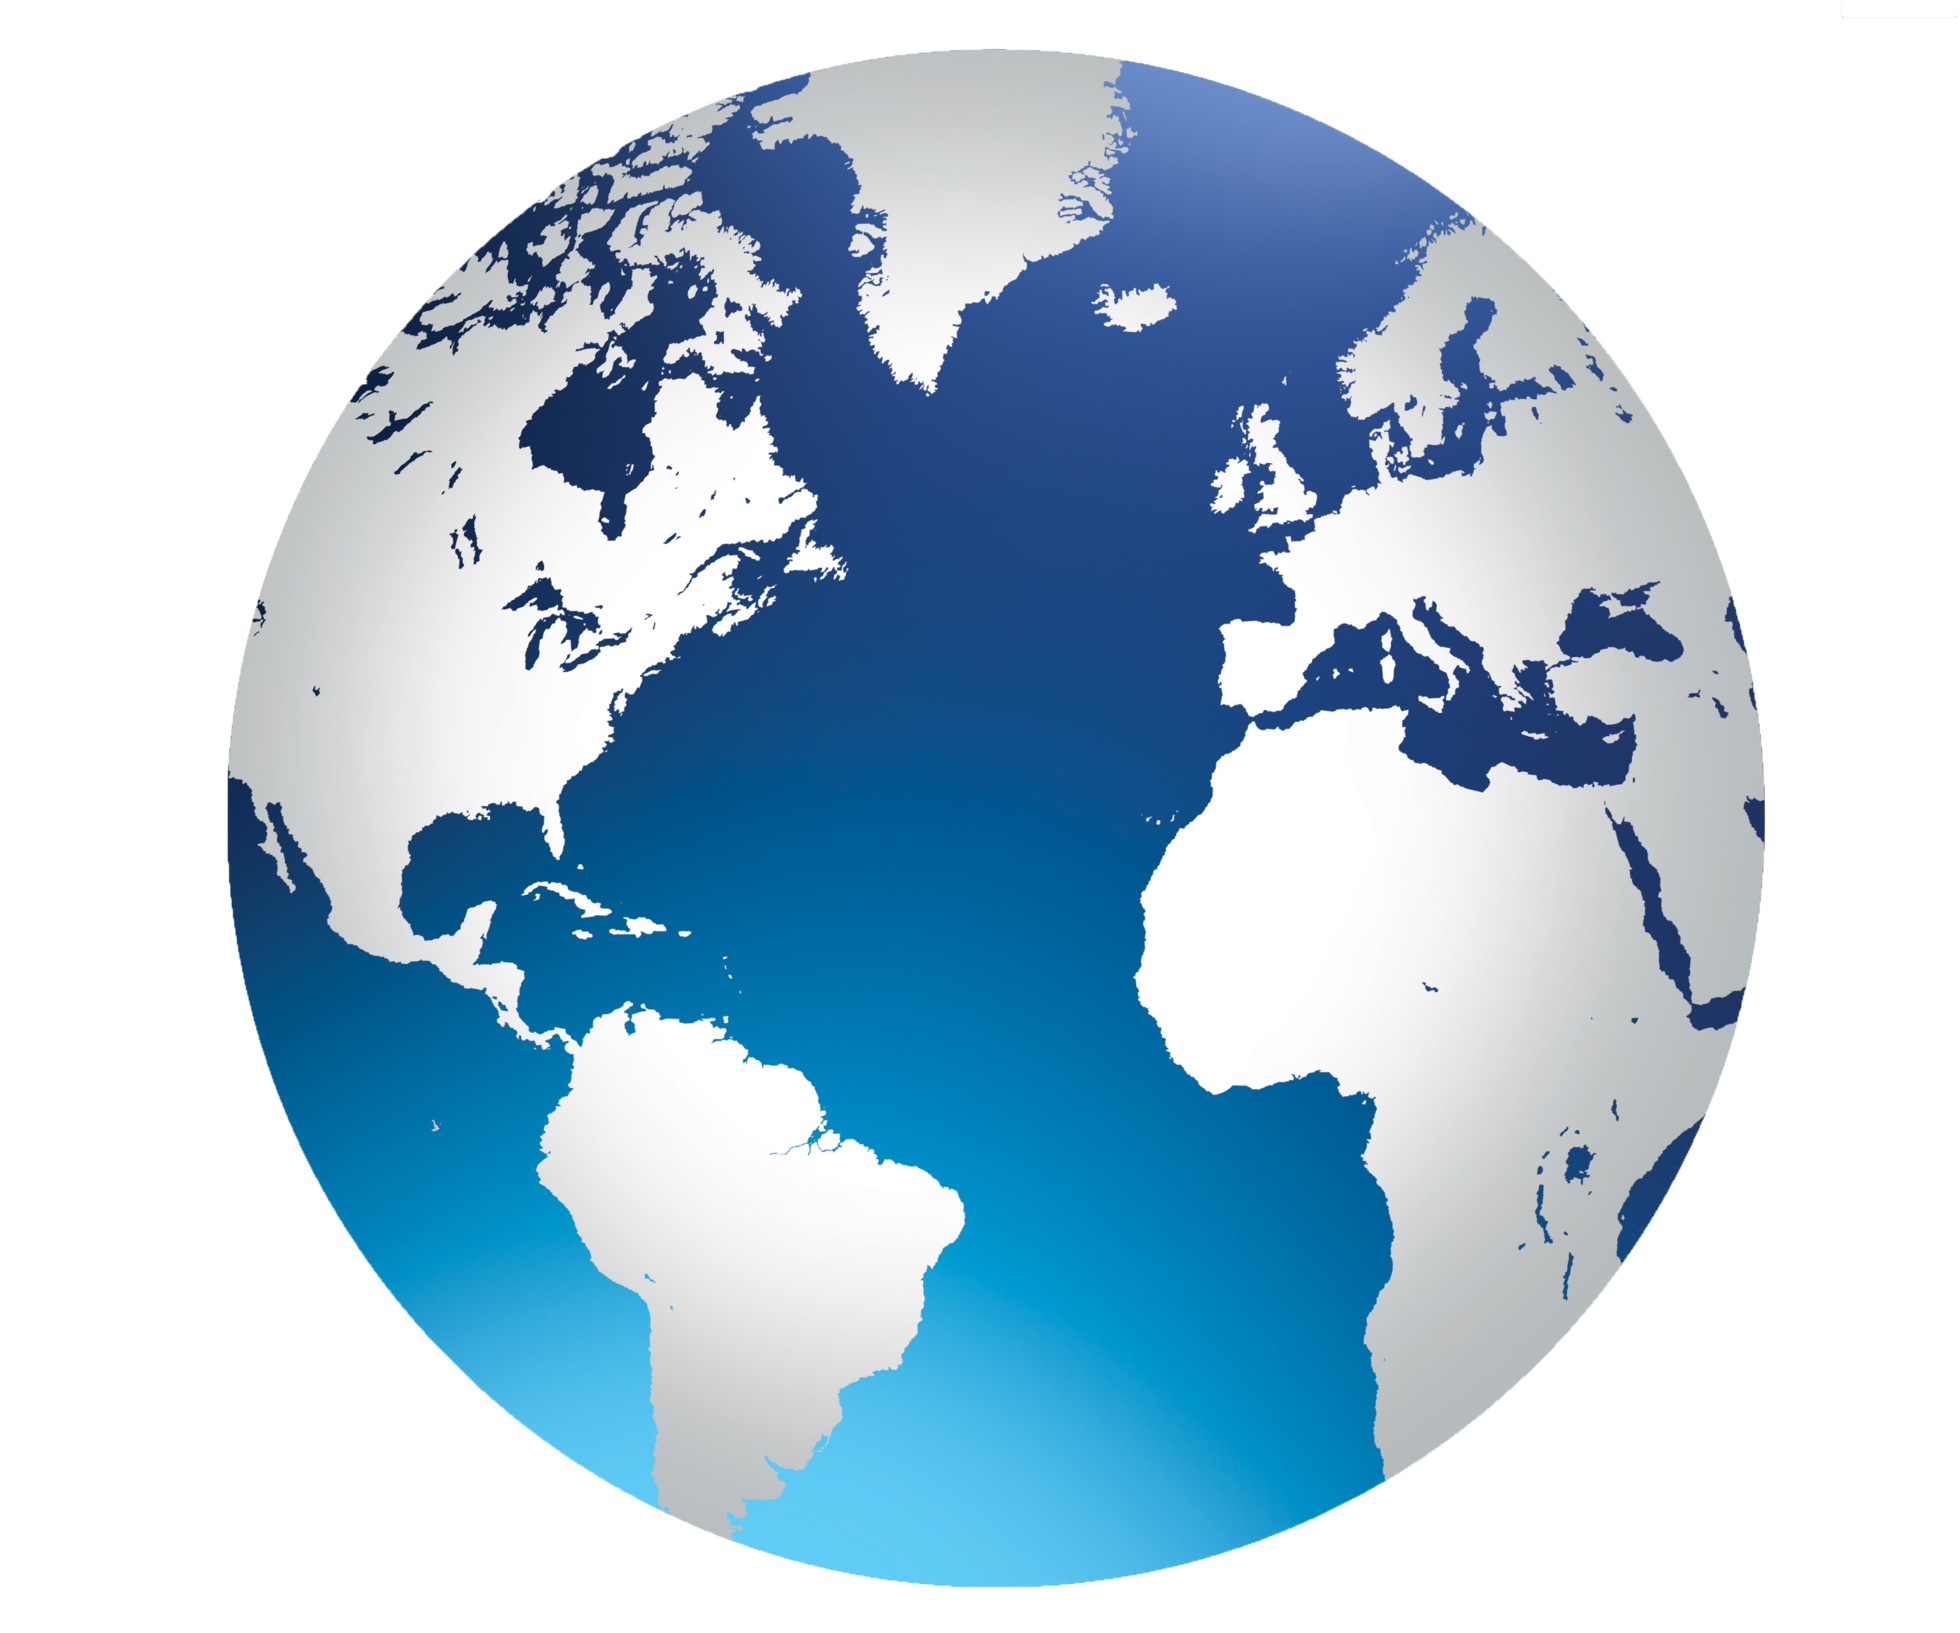 hd png image of world globe transparent google search